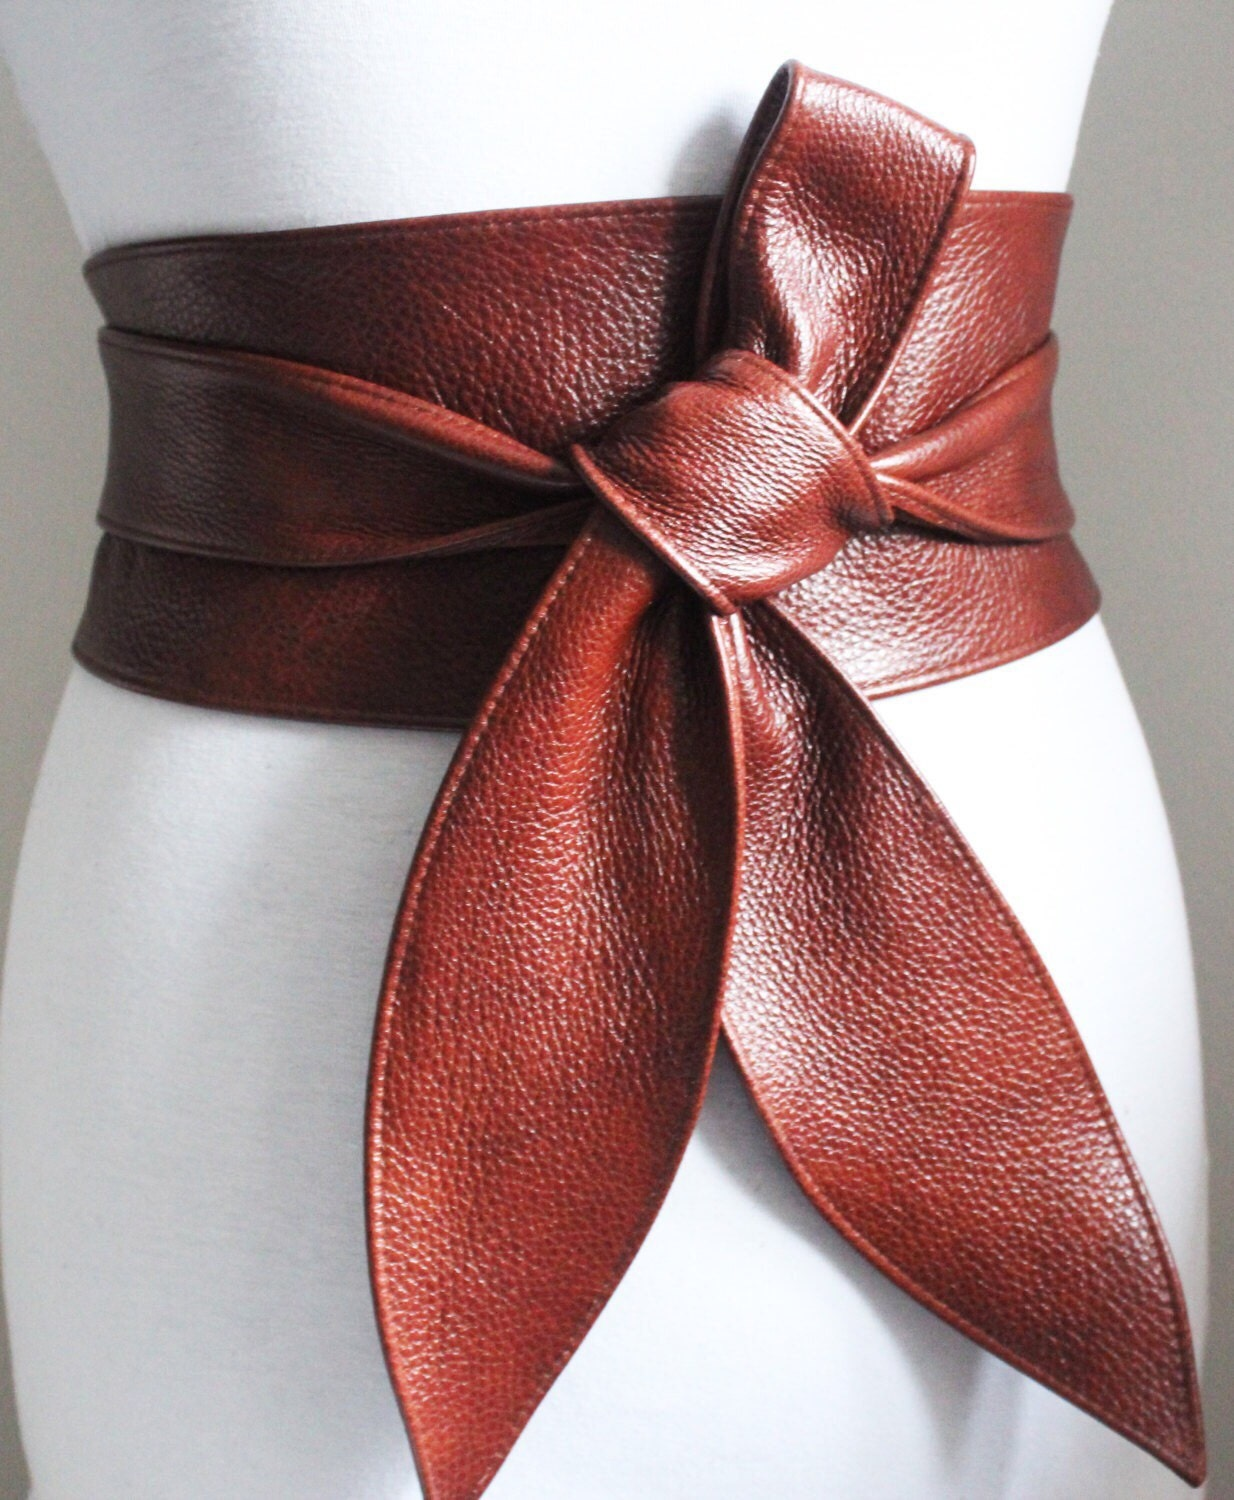 b9ced996f63 Rich Brown Leather Obi Belt tulip tie